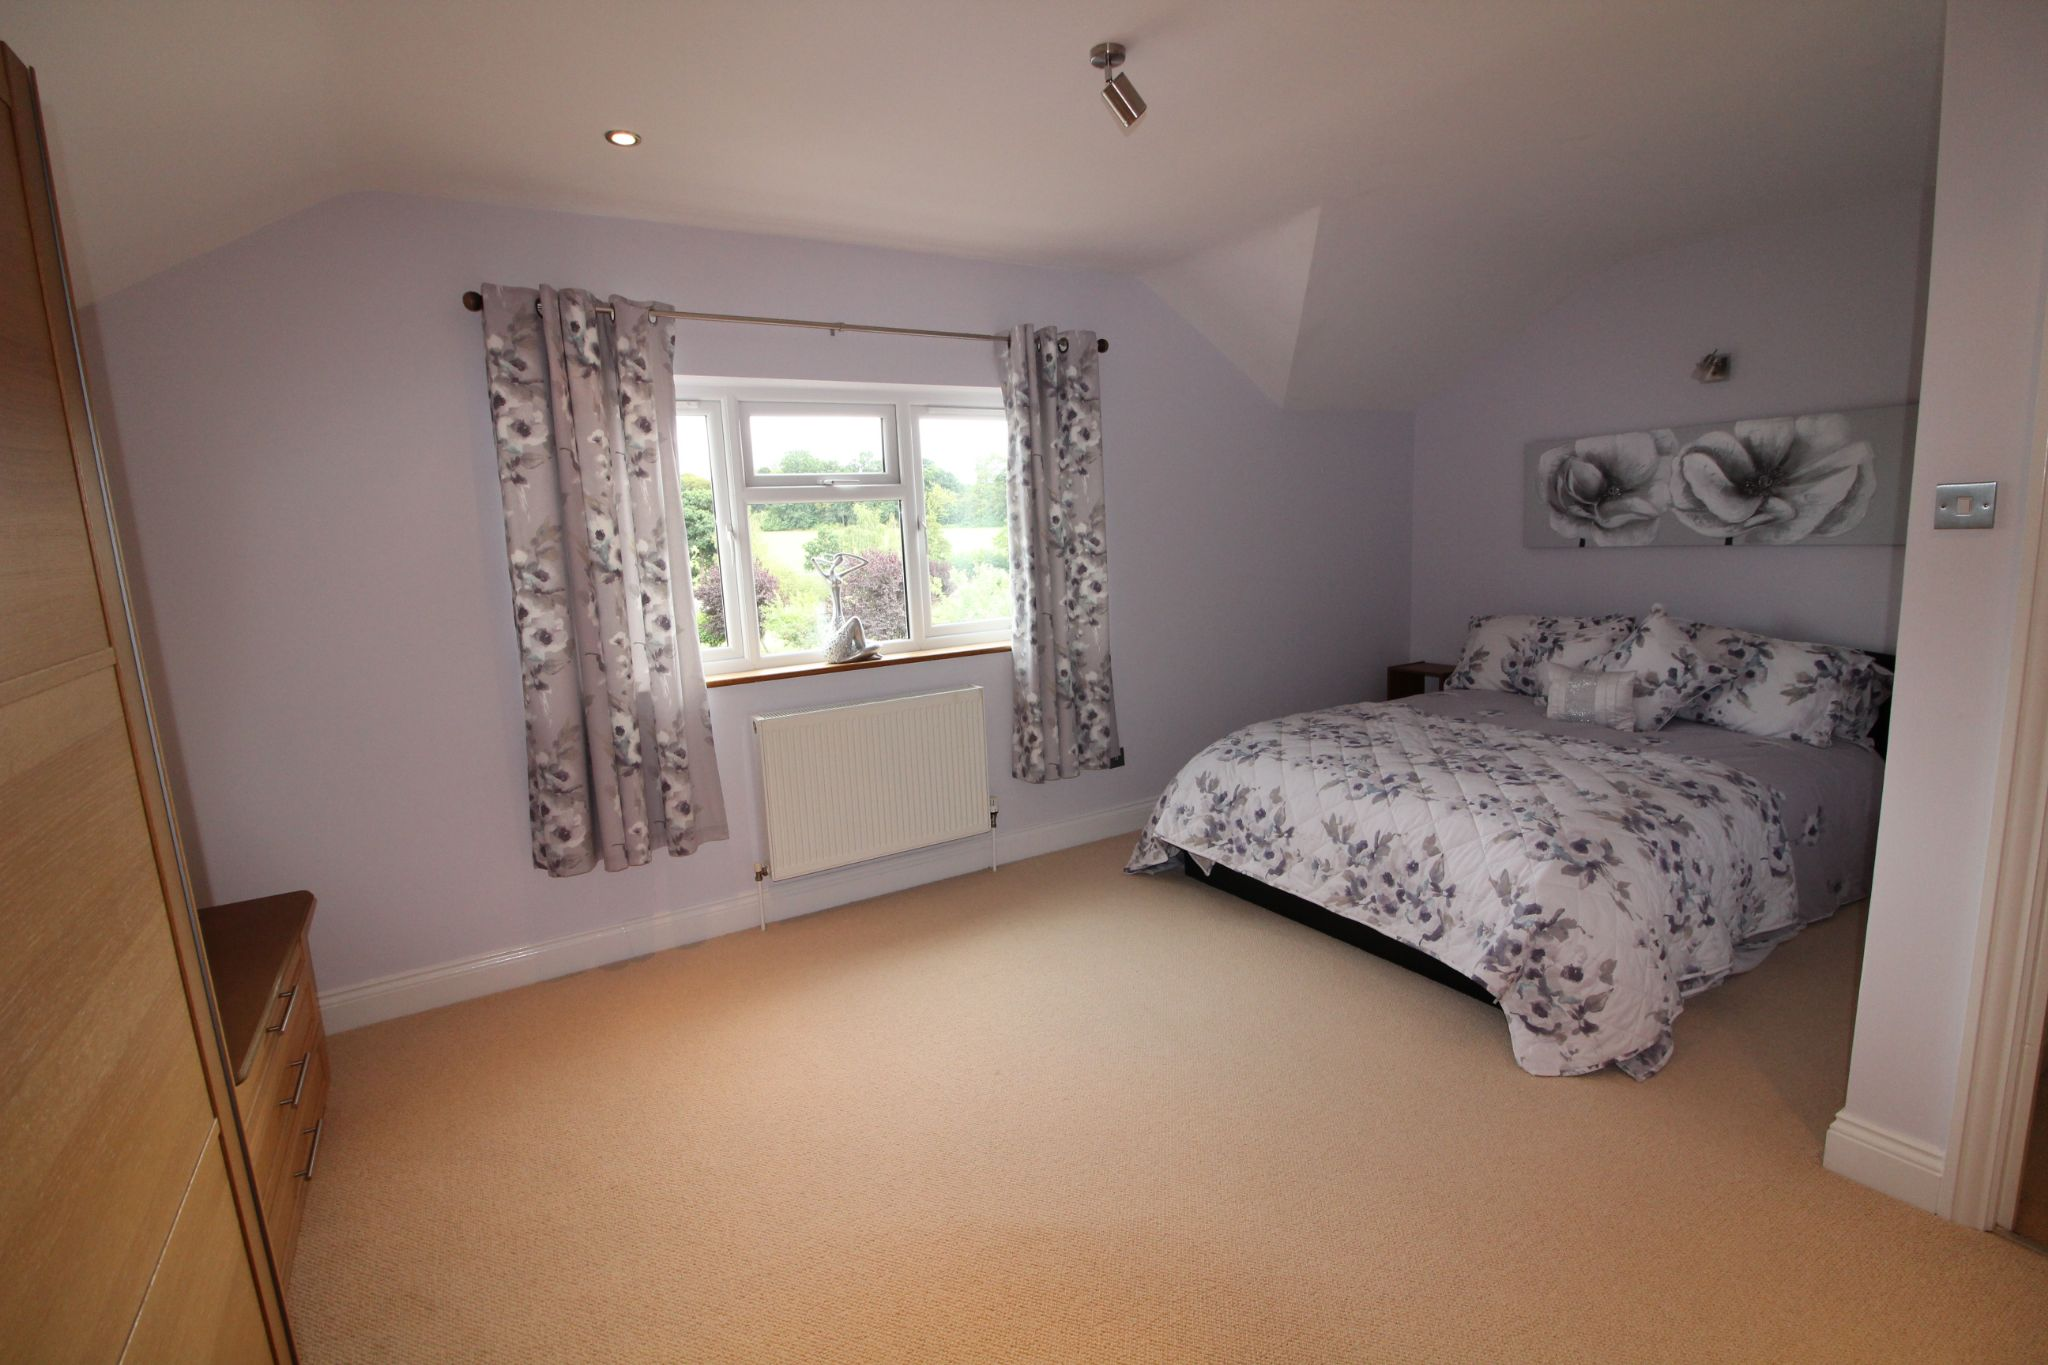 5 bedroom detached house SSTC in North Mymms - Photograph 18